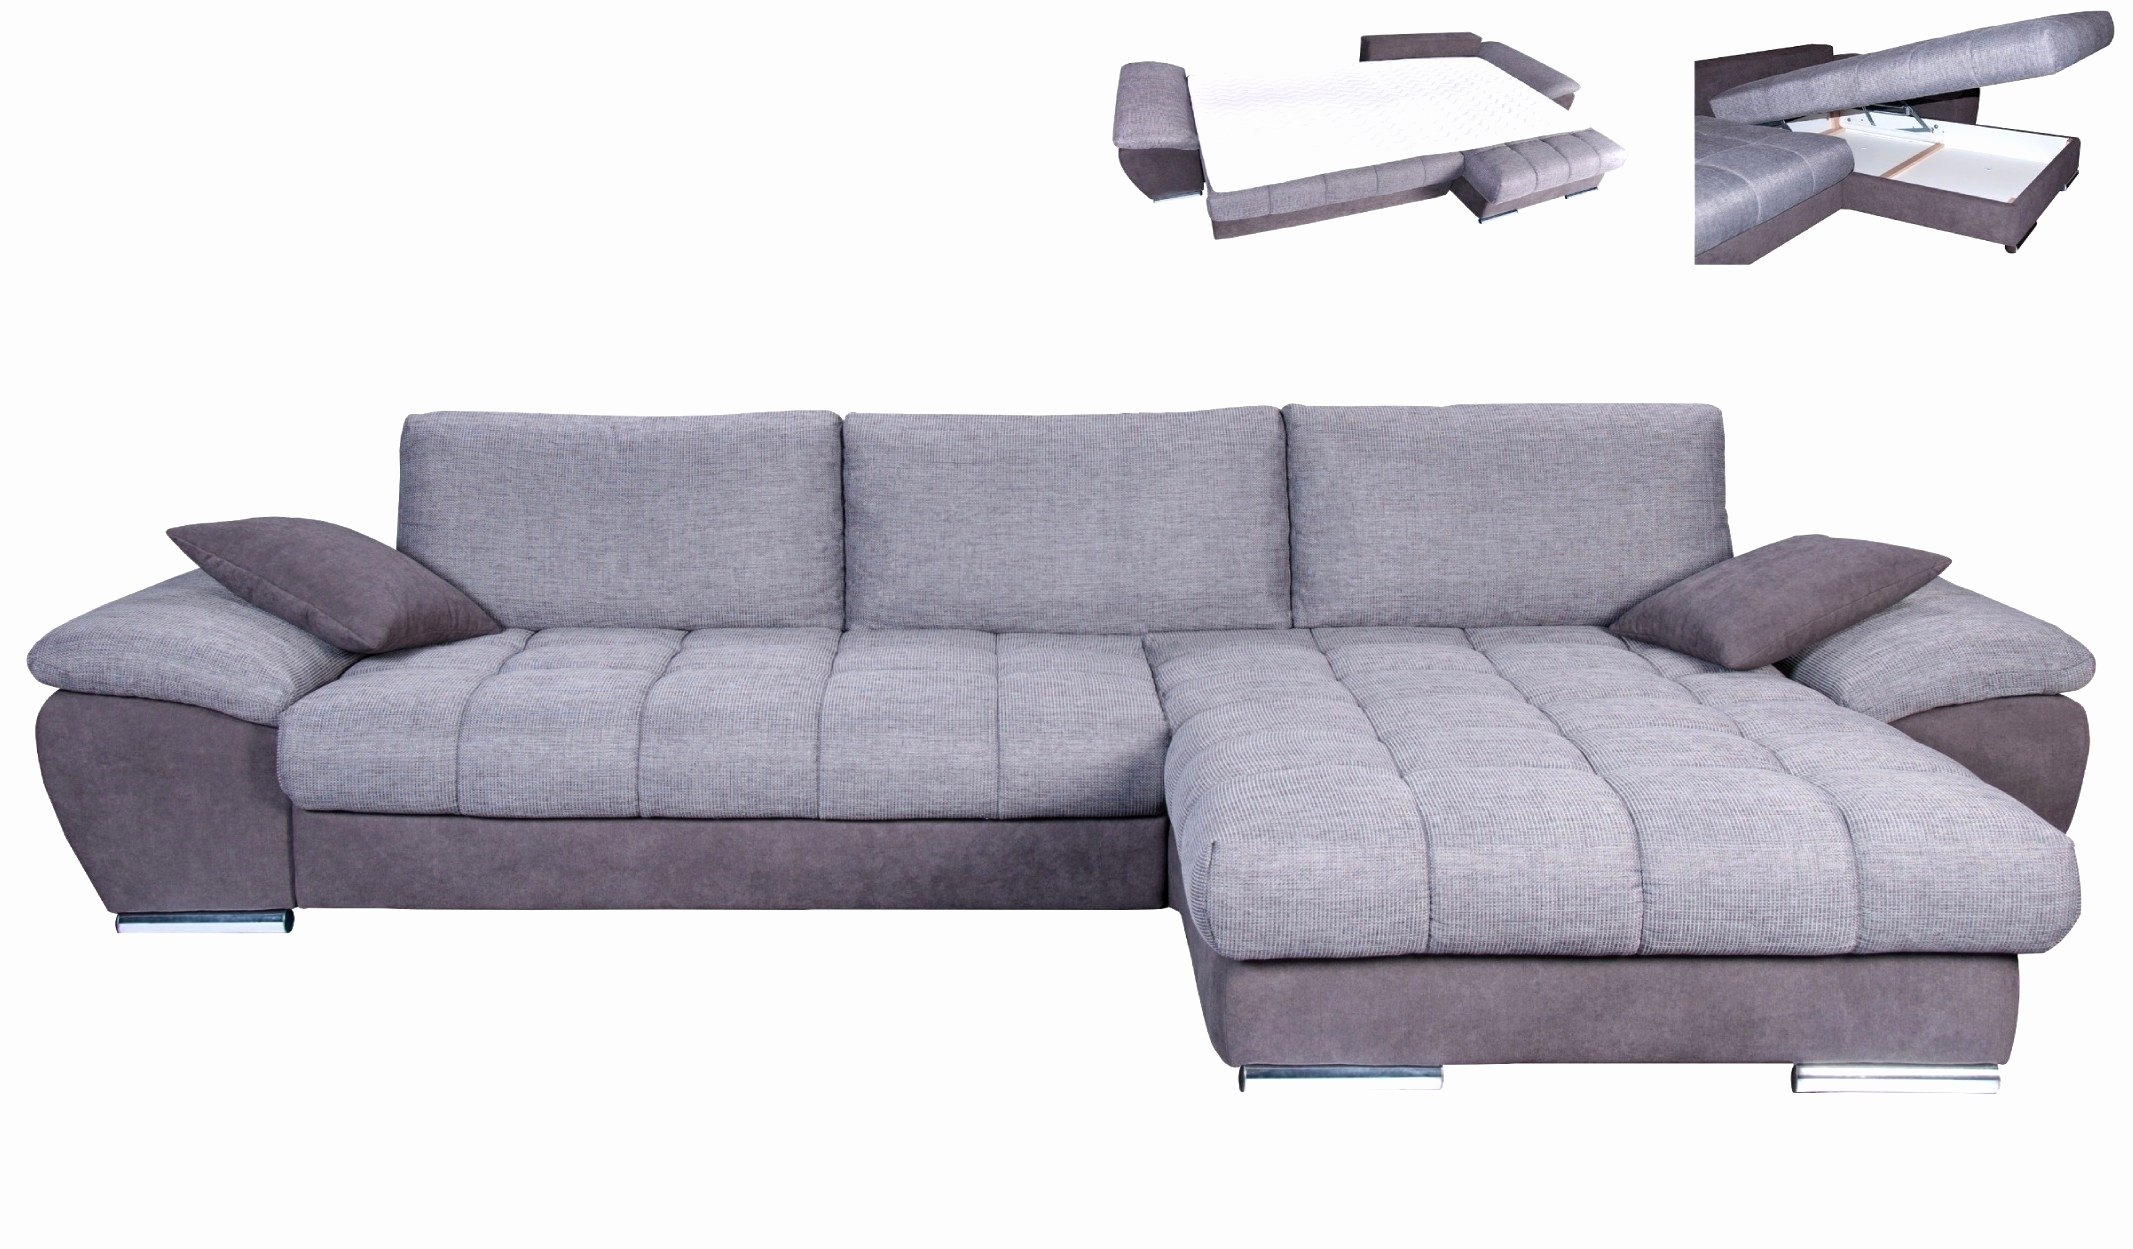 Simple 25 2 Piece Sectionals With Chaise Awesome | Russiandesignshow Regarding Aquarius Light Grey 2 Piece Sectionals With Laf Chaise (Image 22 of 25)